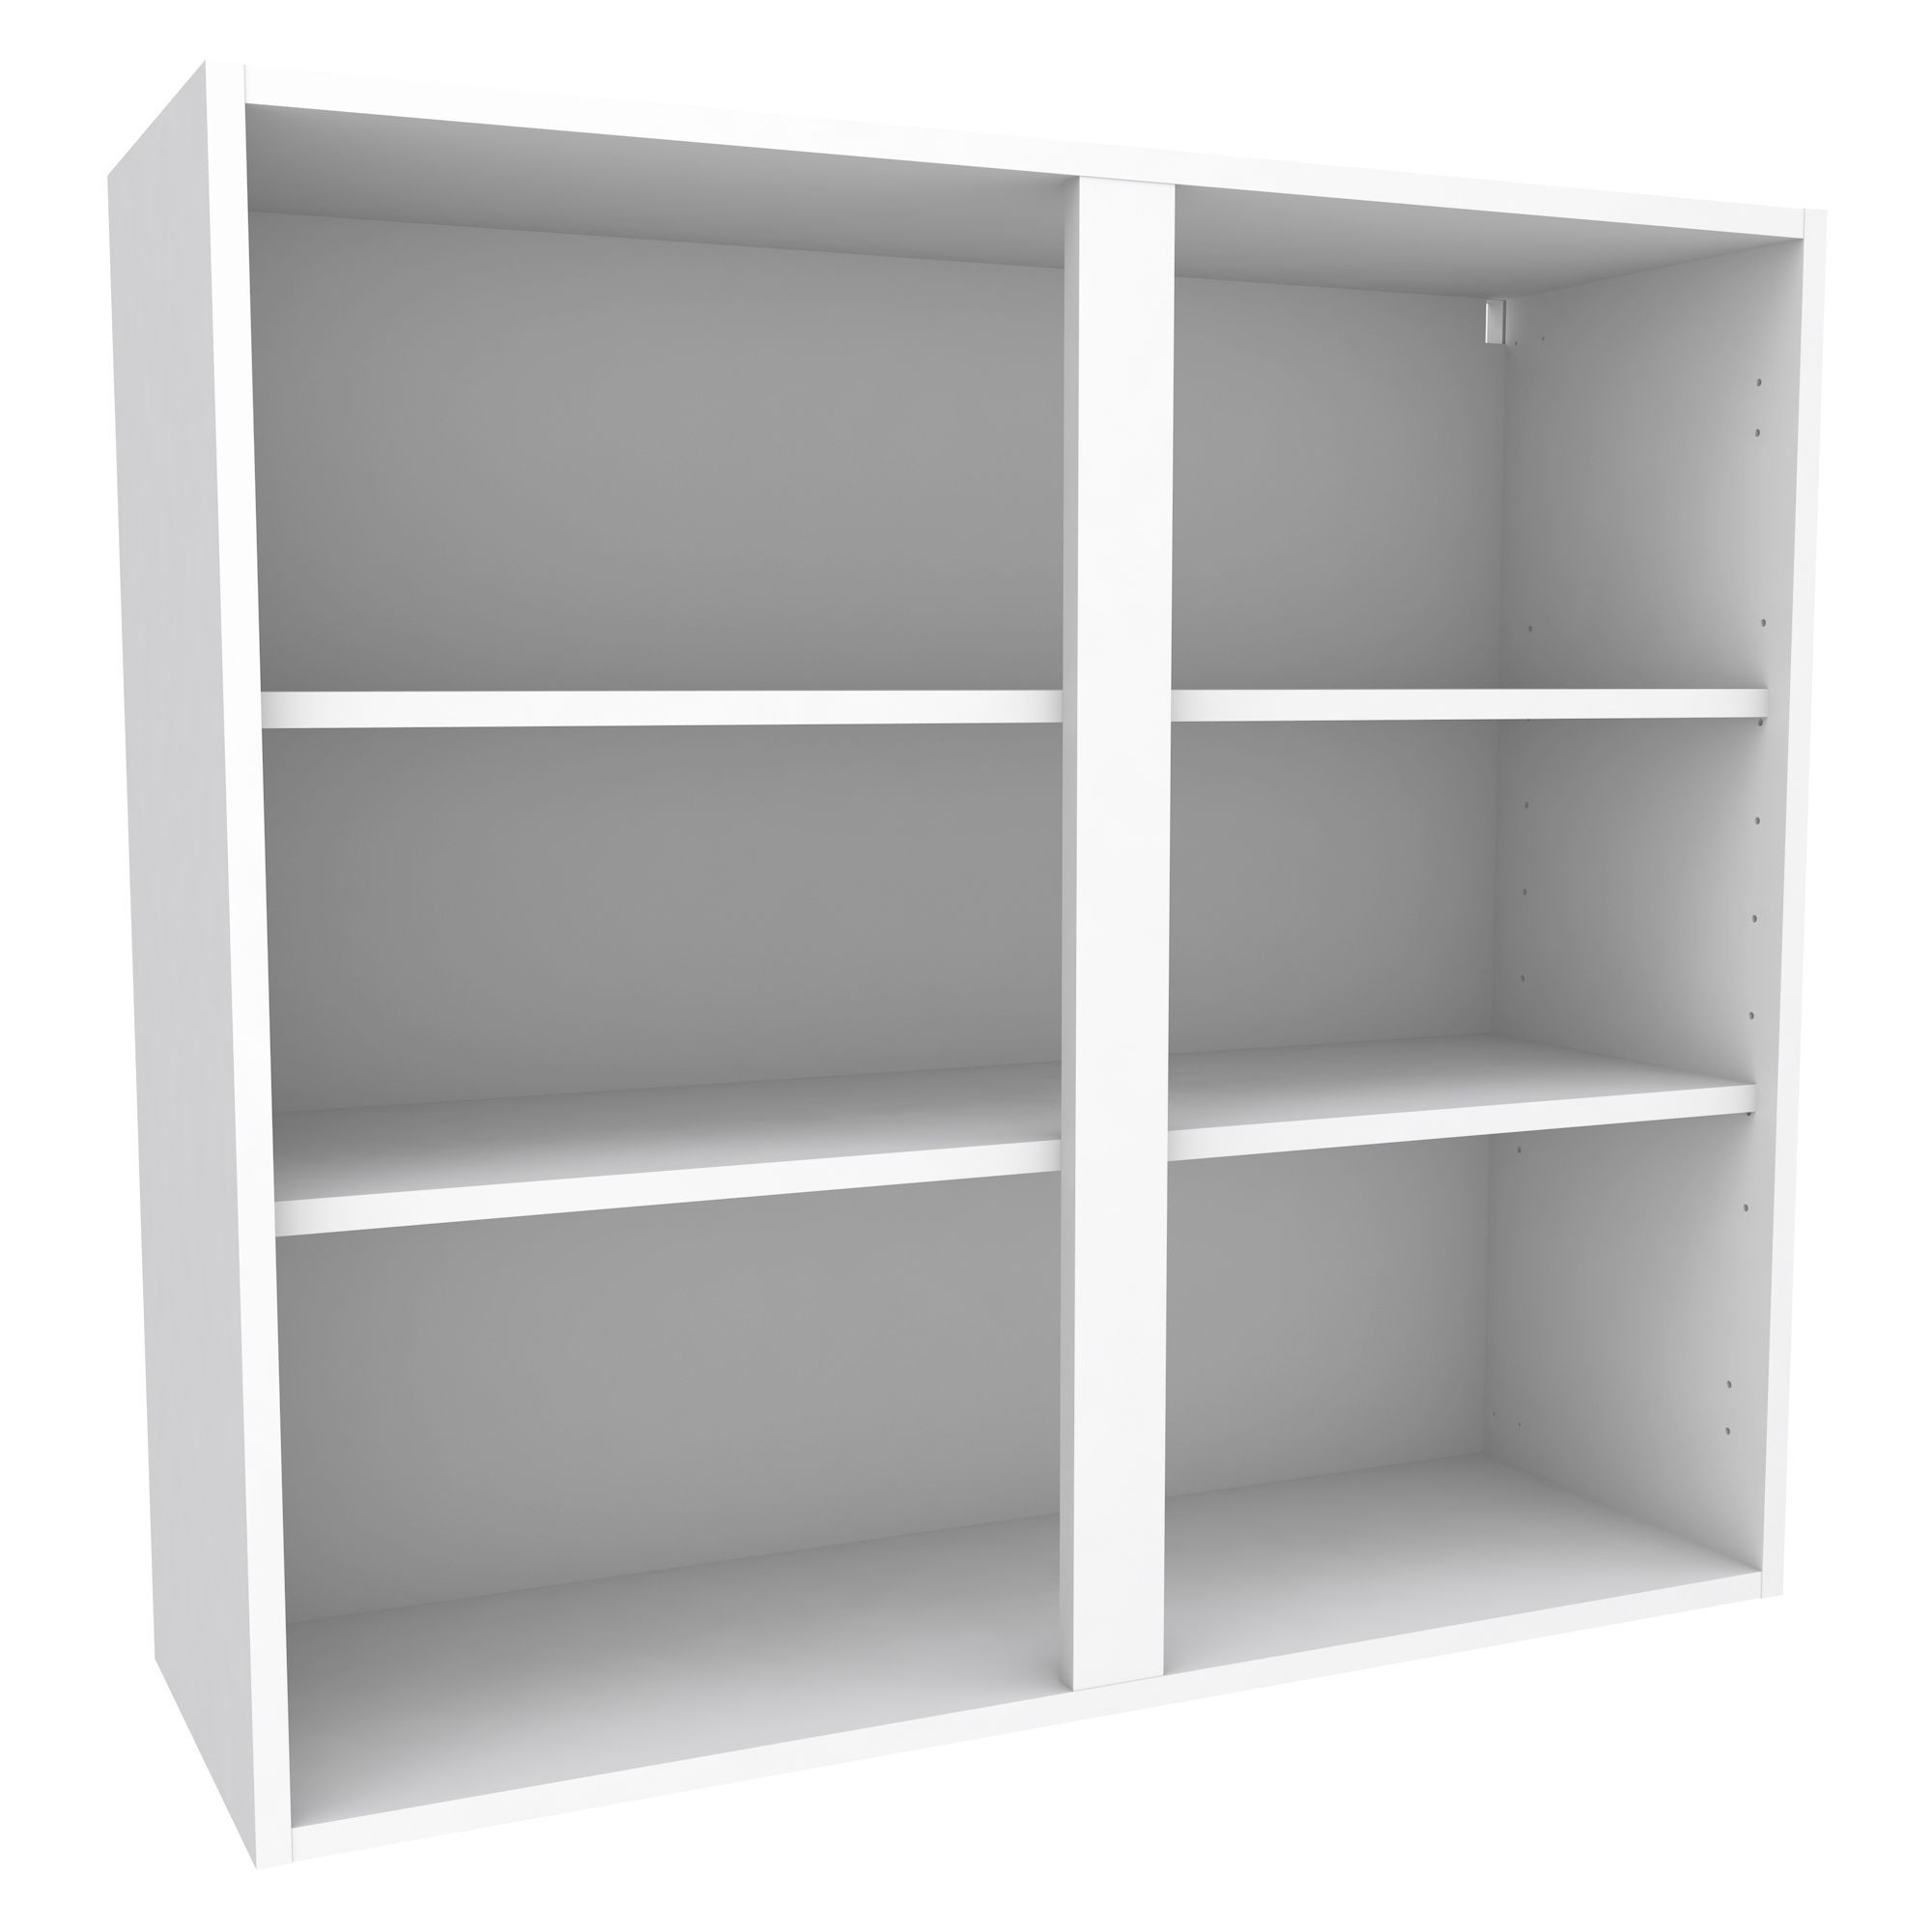 Cooke U0026 Lewis White Standard Tall Wall Cabinet (W)1000mm | Departments |  DIY At Bu0026Q.